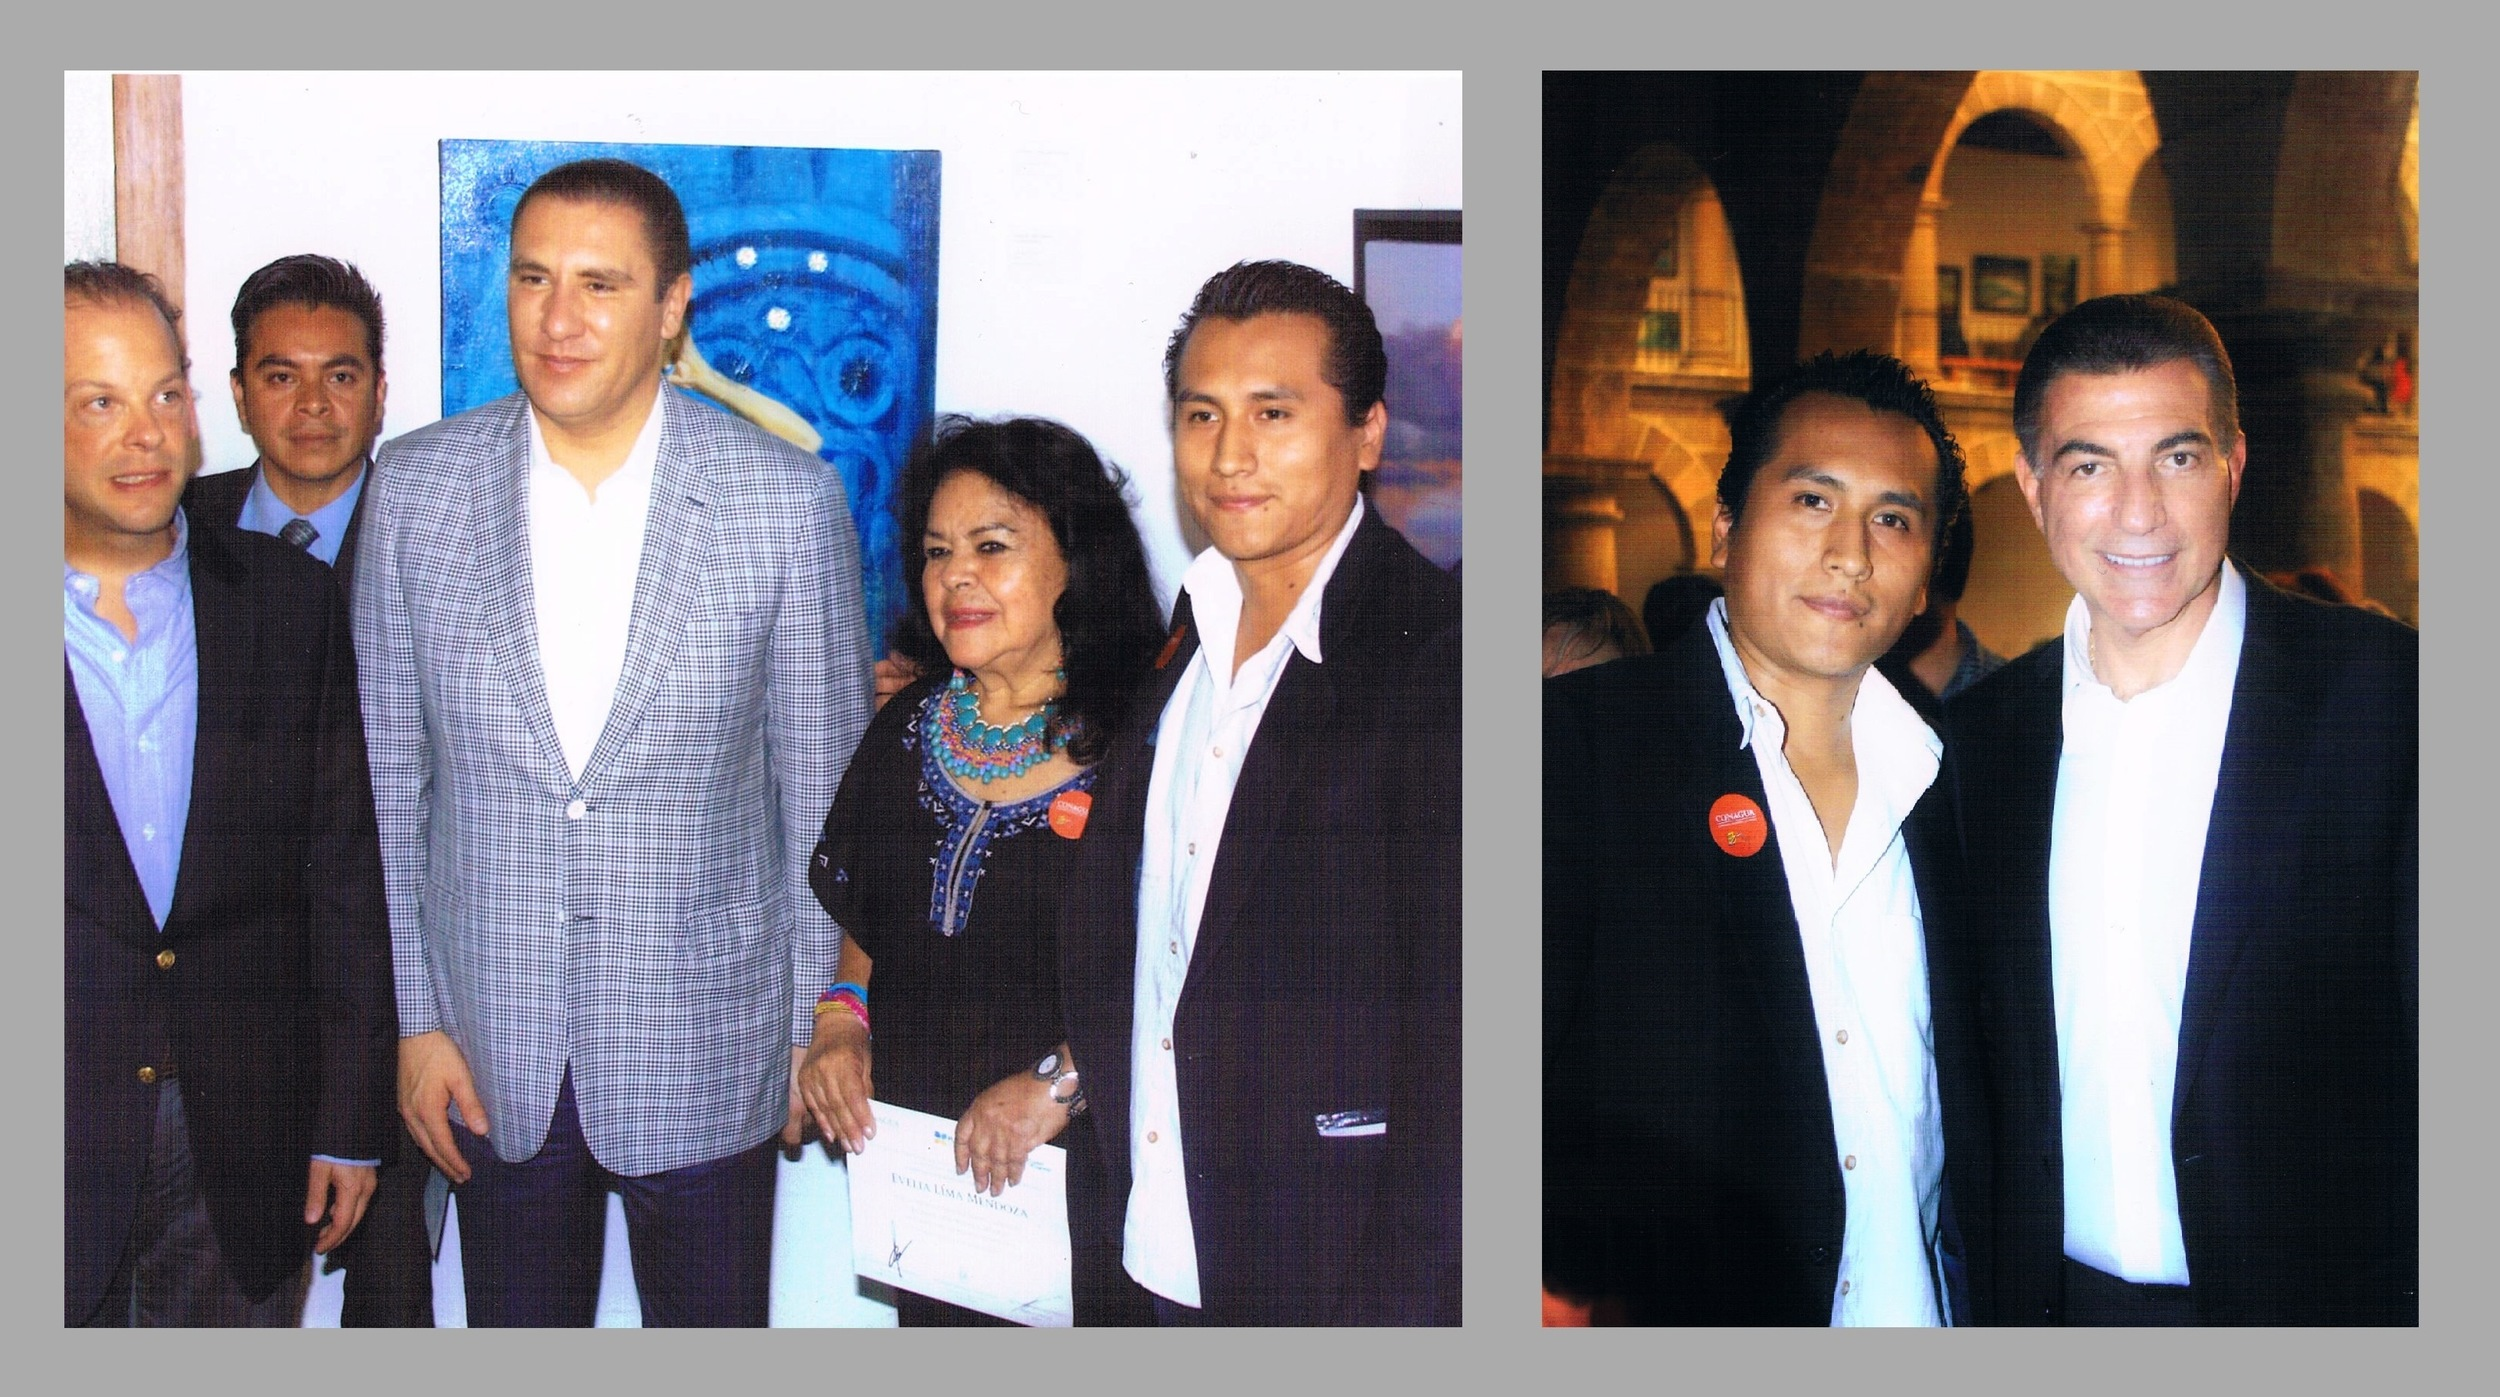 At the opening of the exhibition with Puebla's governor Rafael Moreno Valle and municipal mayor of Puebla Tony Gali.